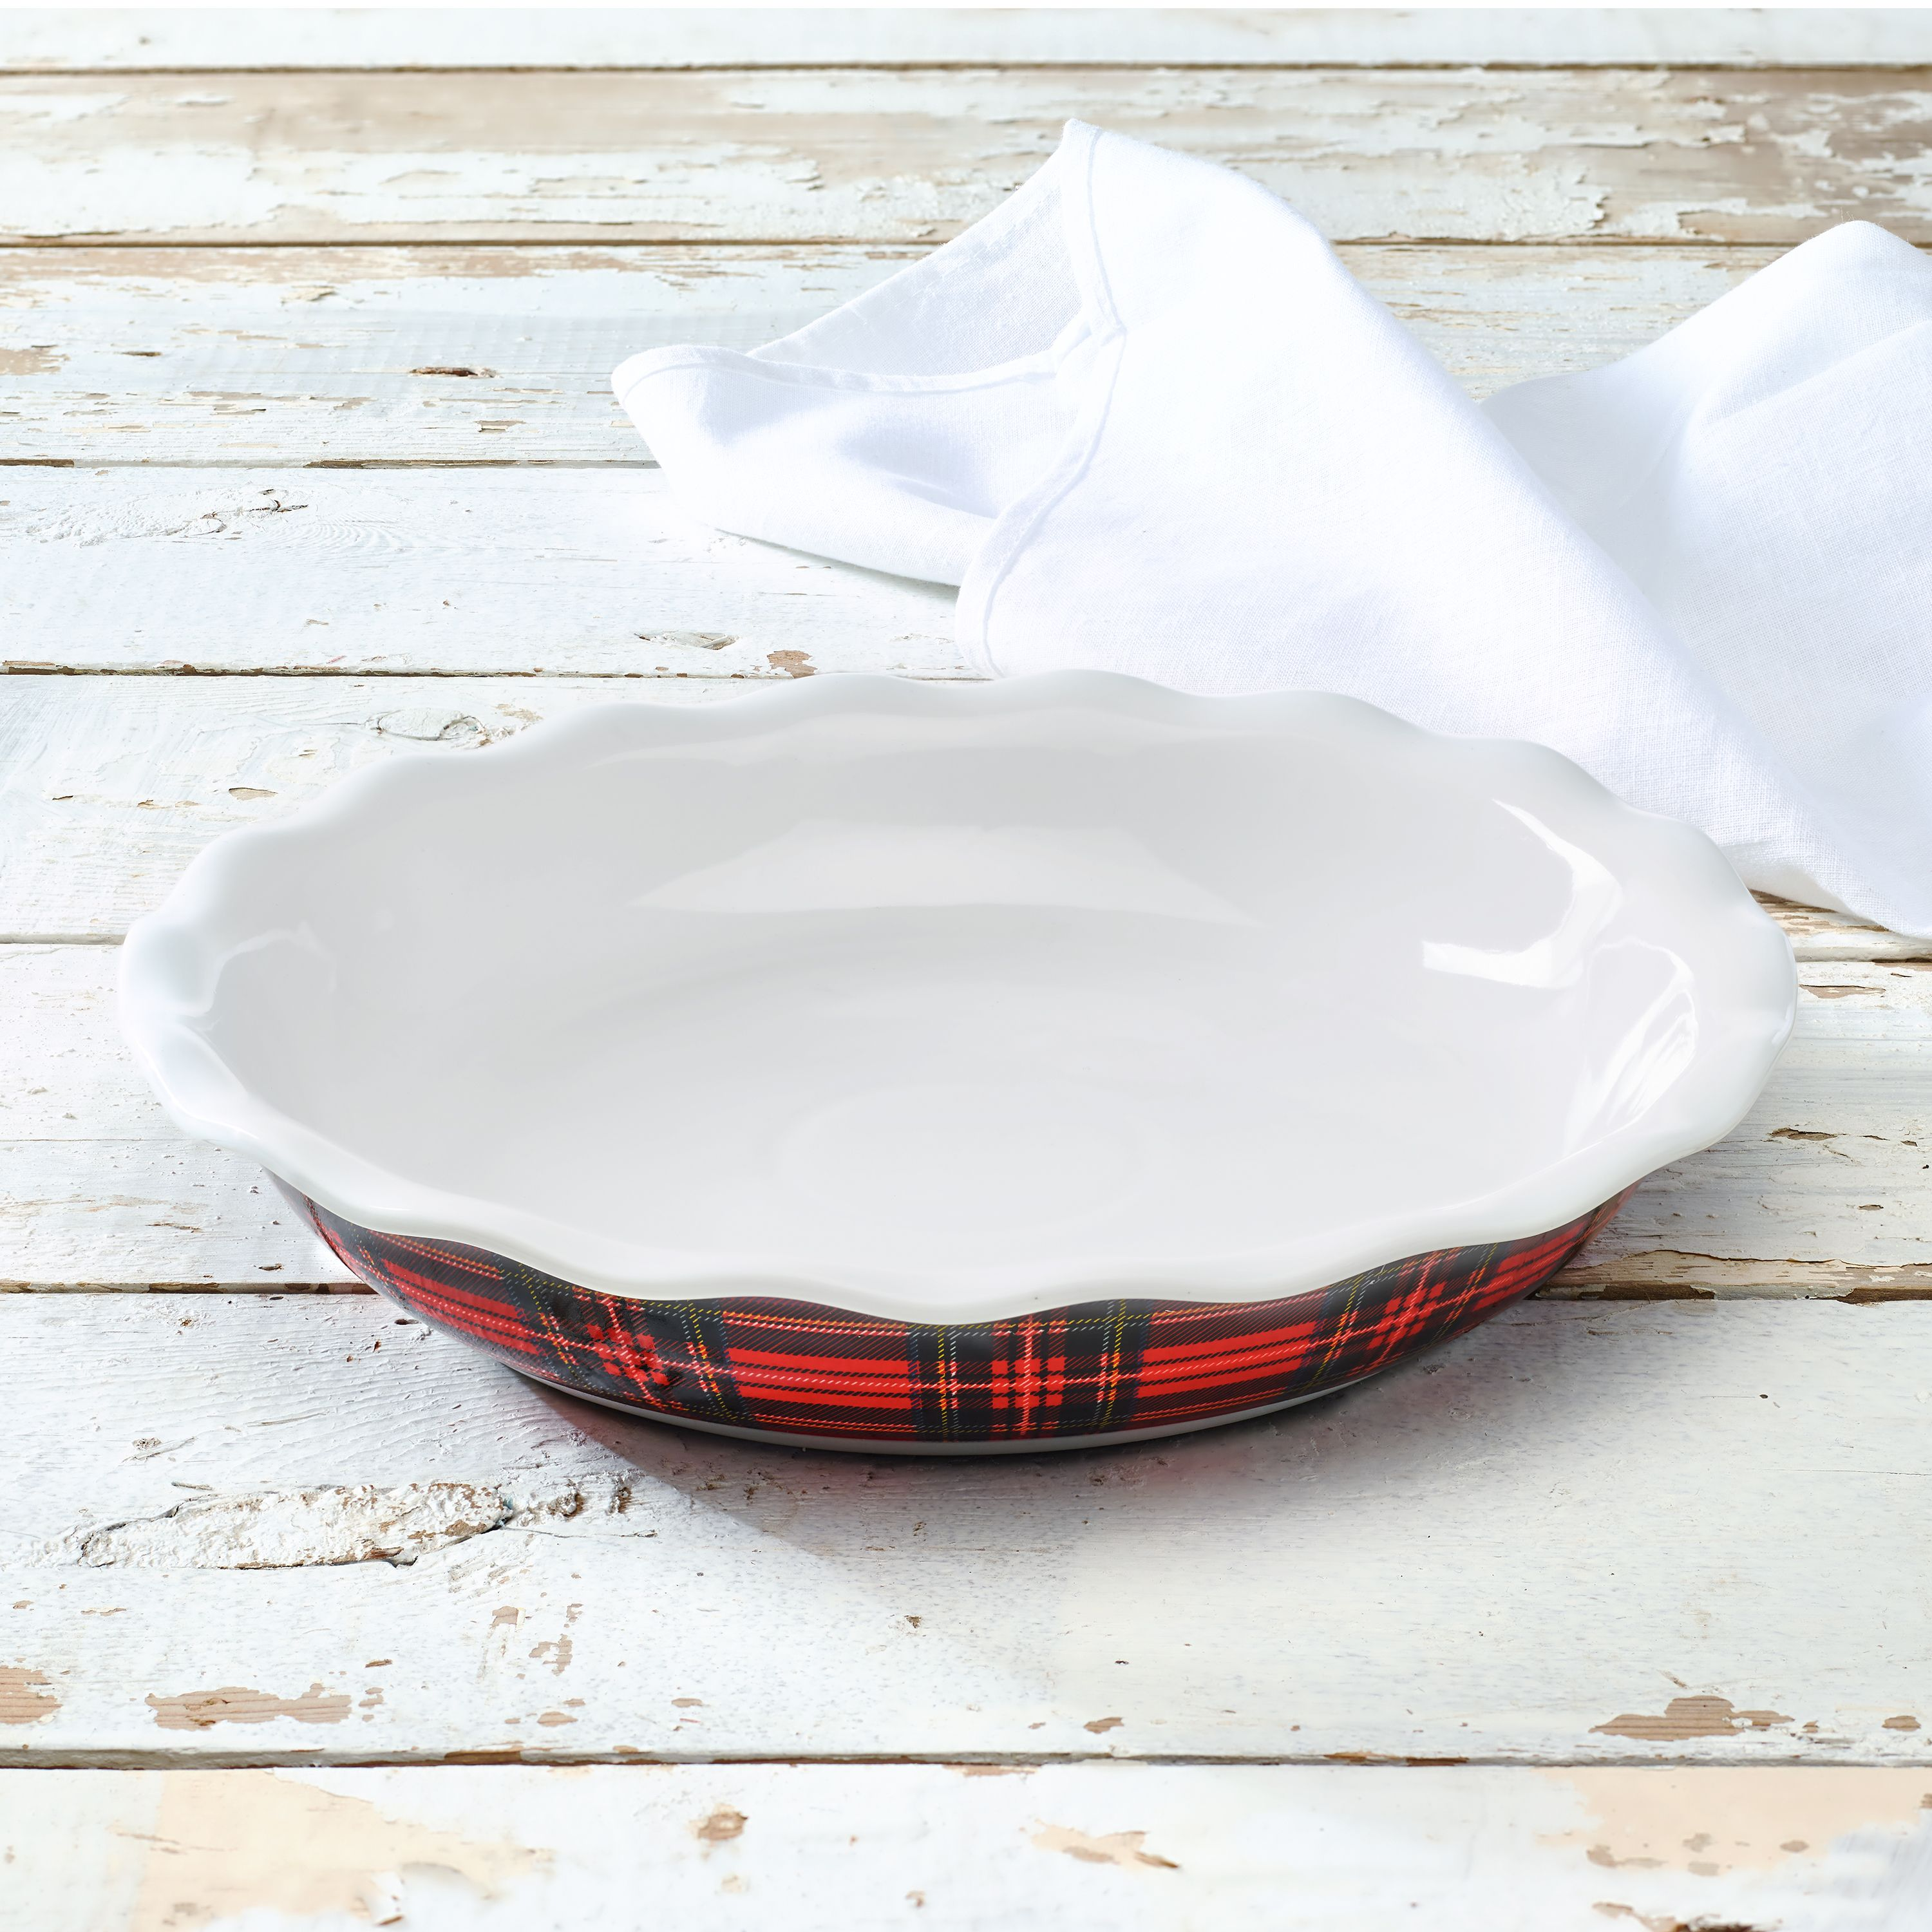 Highland Collection 10 Plaid Pie Plate, Red Plaid, Walmart Exclusive